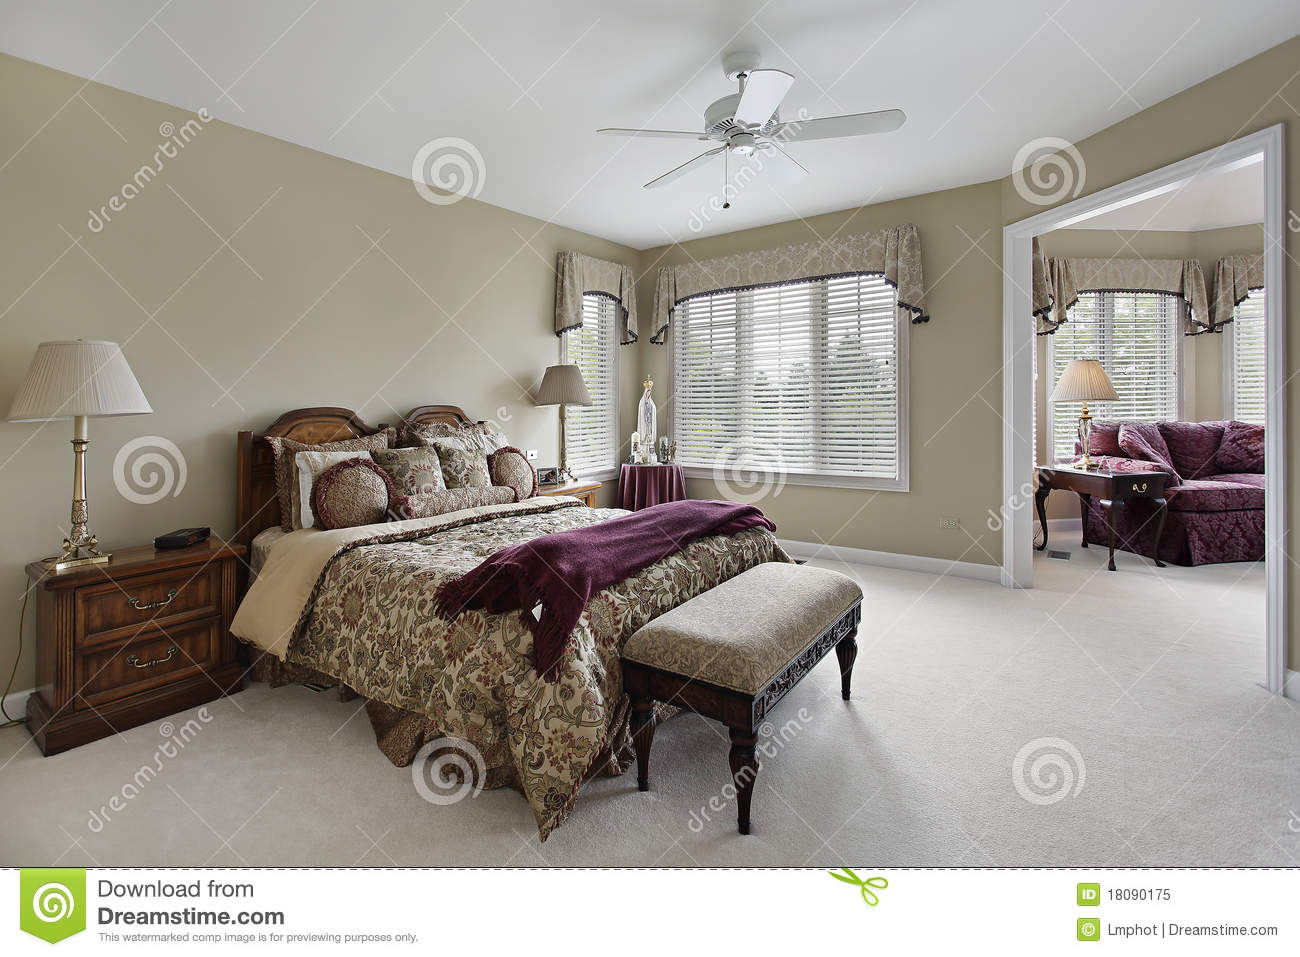 Royalty Free Stock Photo  Download Master Bedroom With Adjacent Sitting Room. Master Bedroom With Adjacent Sitting Room Stock Image   Image